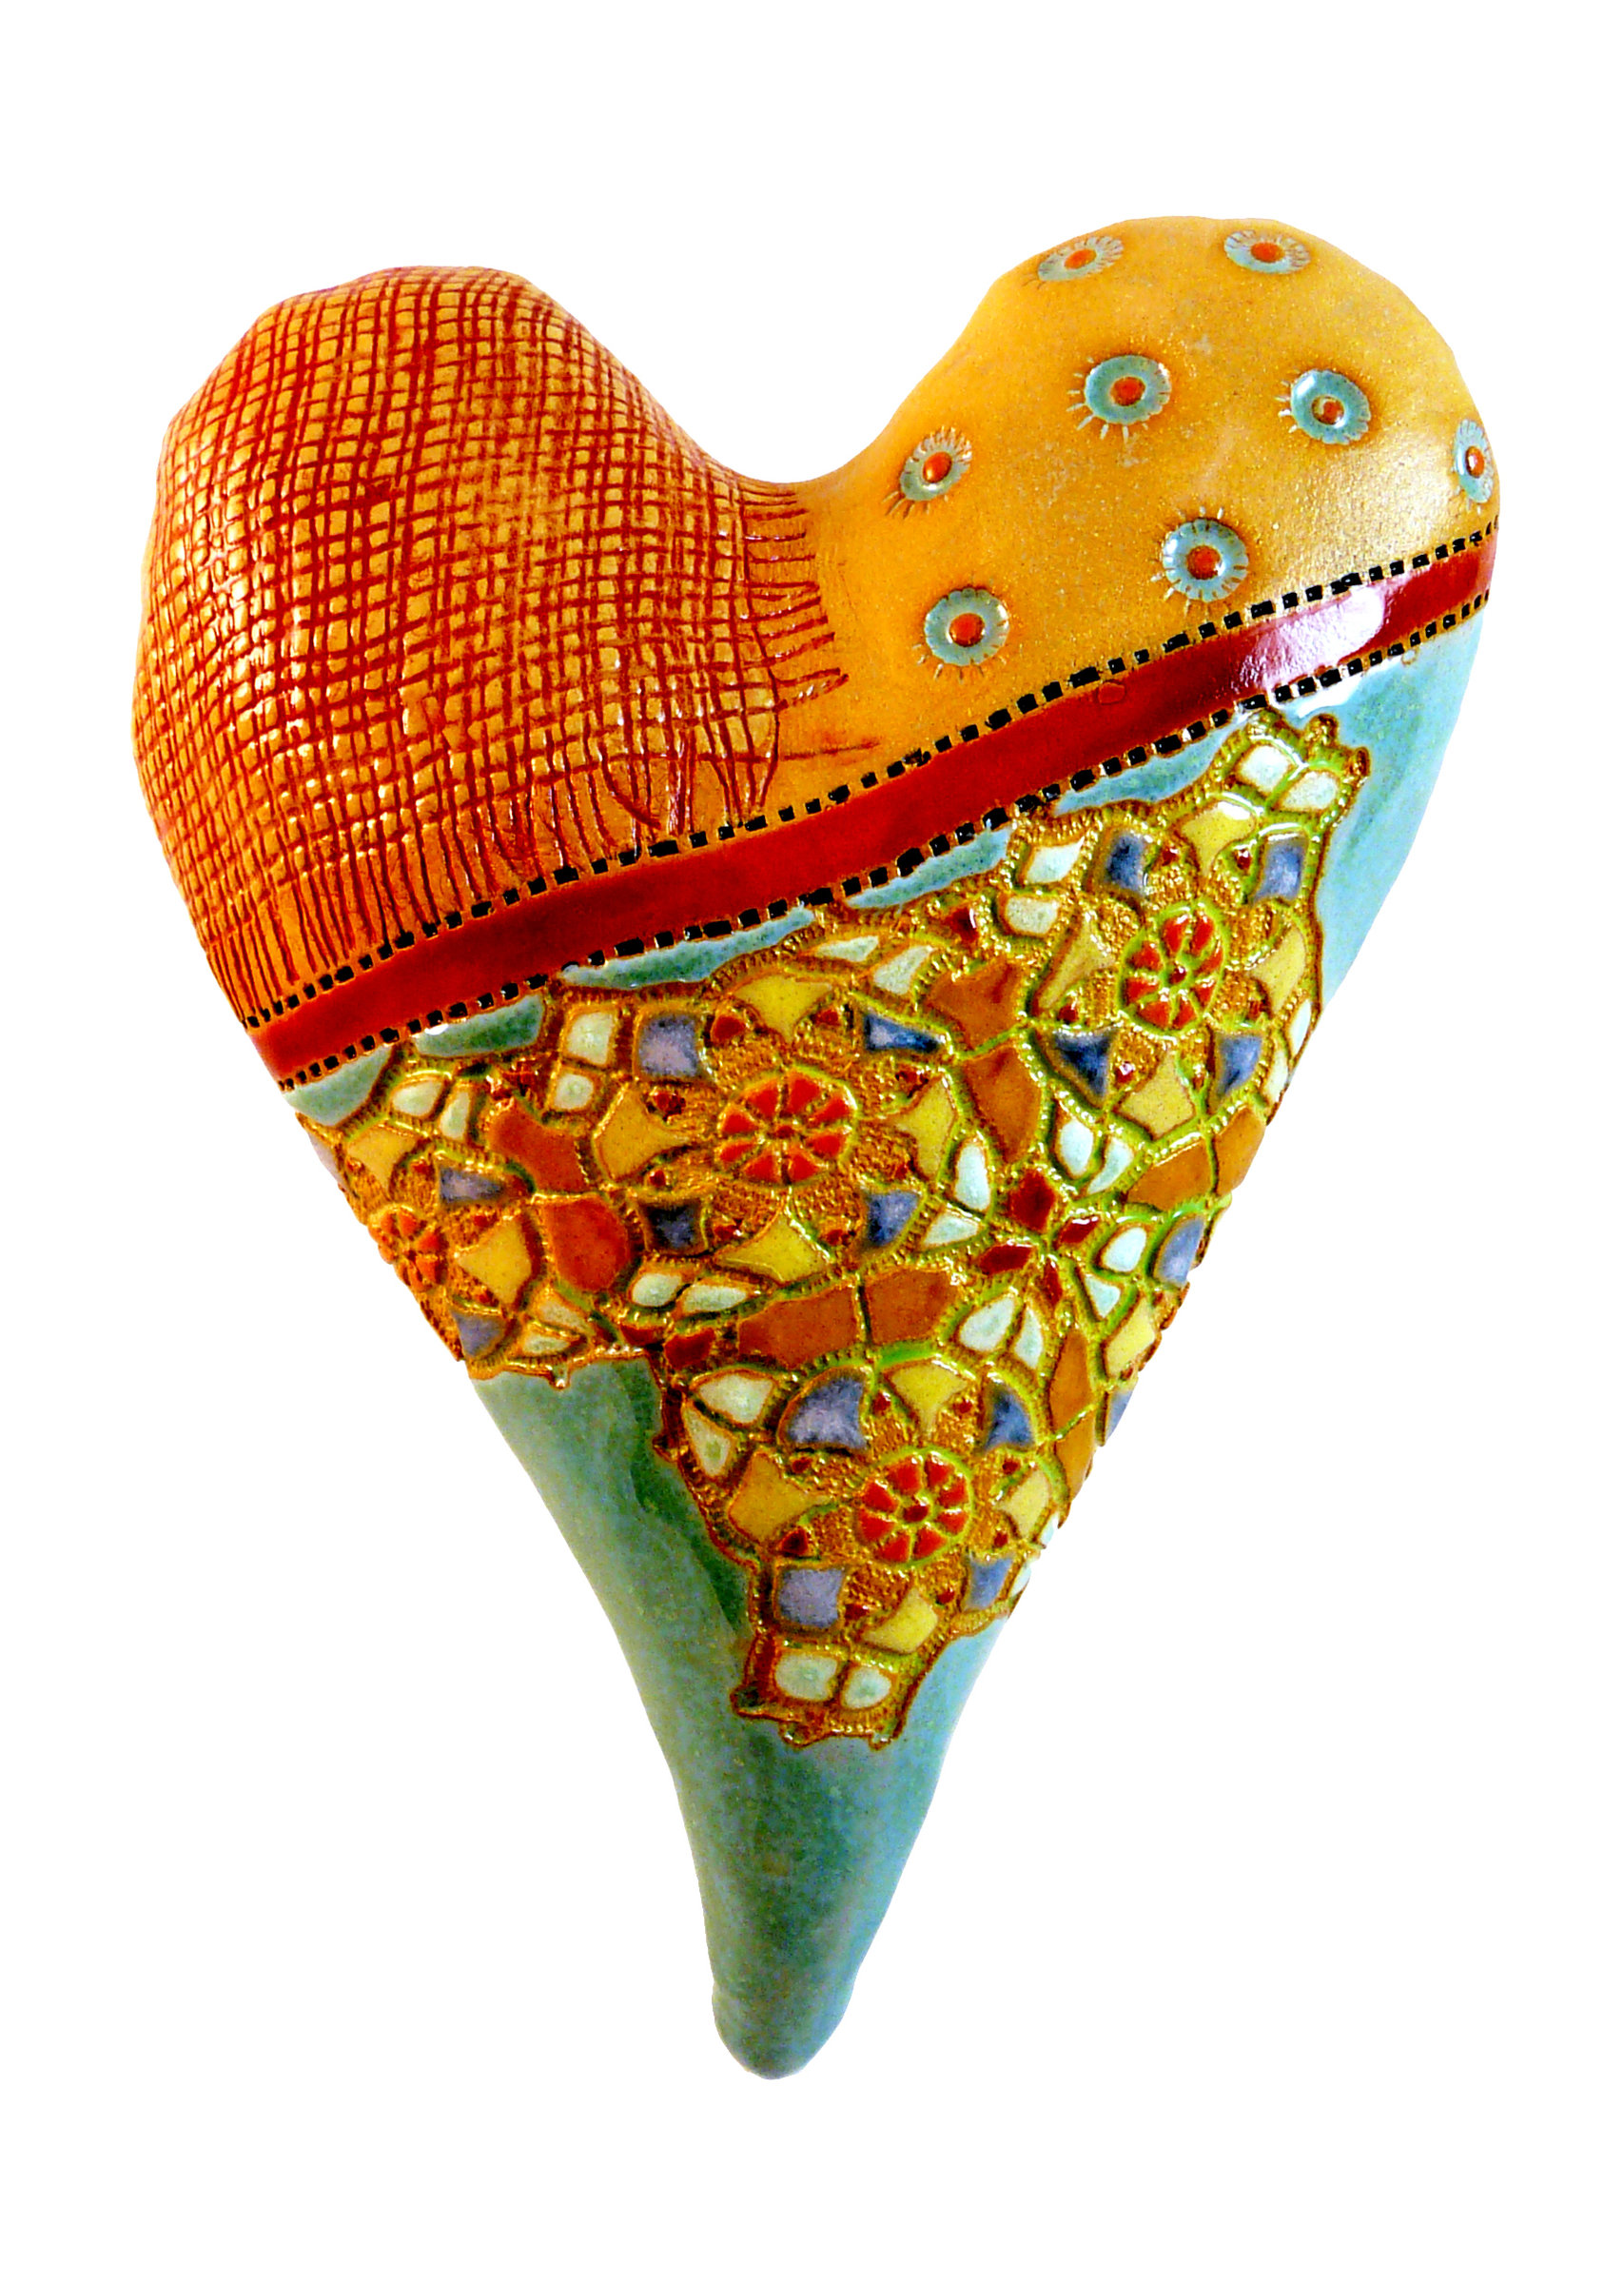 Red Ribbon Heart - Ceramic Wall Art - by Laurie Pollpeter Eskenazi